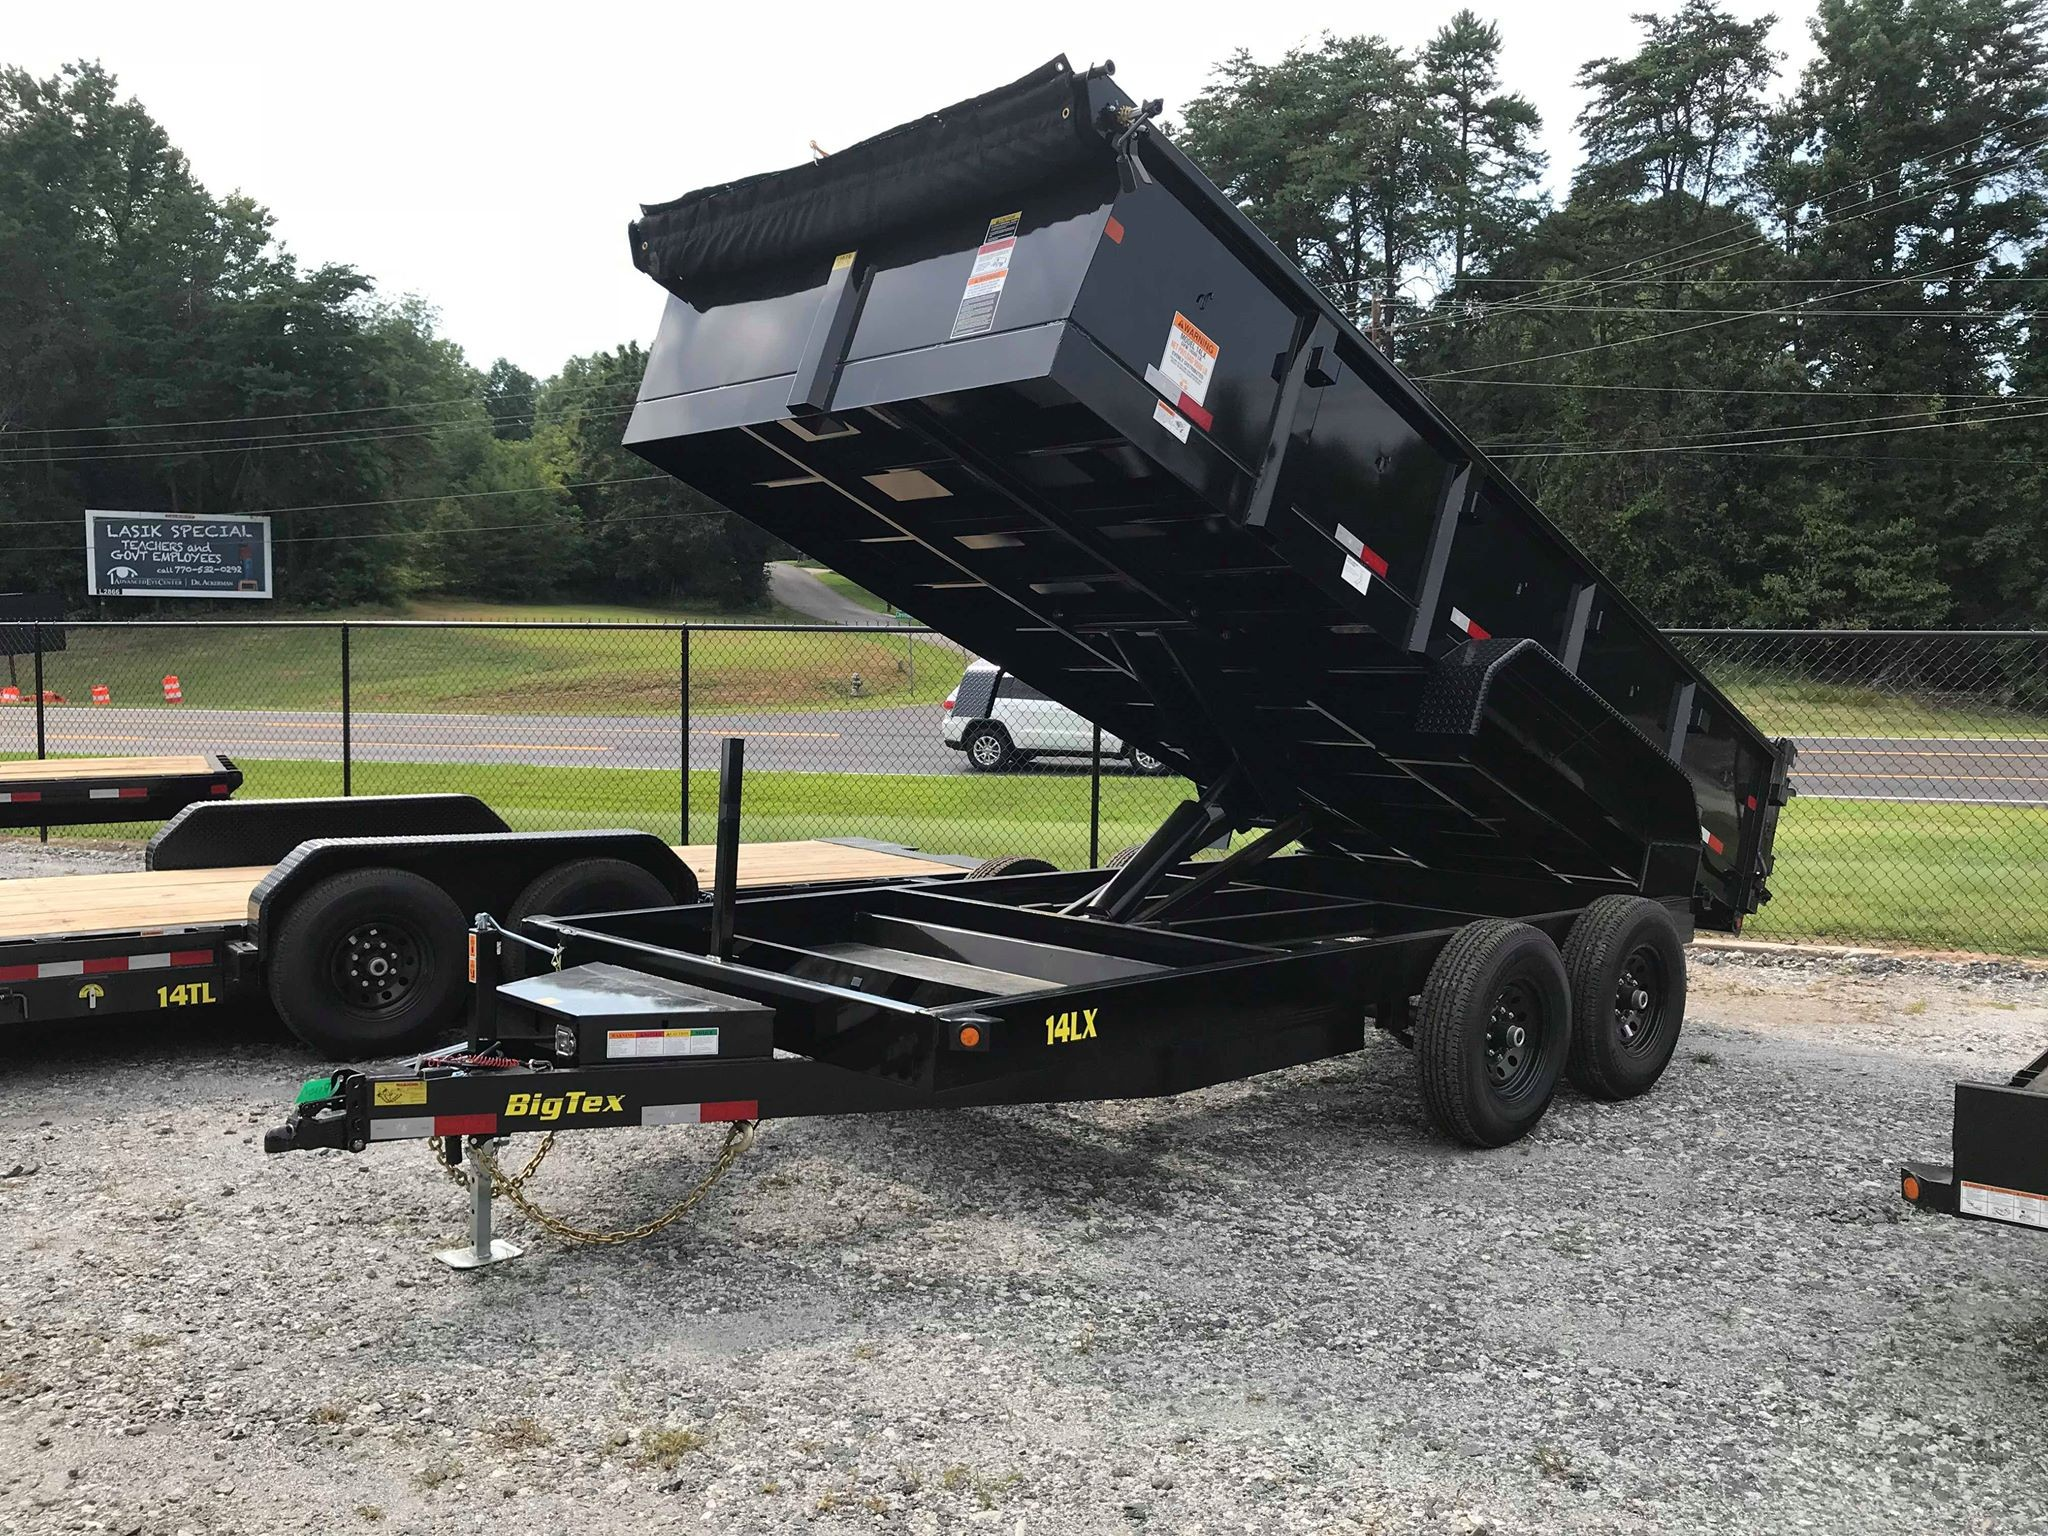 Georgia Trailers For Sale Repair Car Haulers Horse Cargo Trailer Used Gooseneck Wiring Harness On Boxes 2019 Big Tex 14lx 14